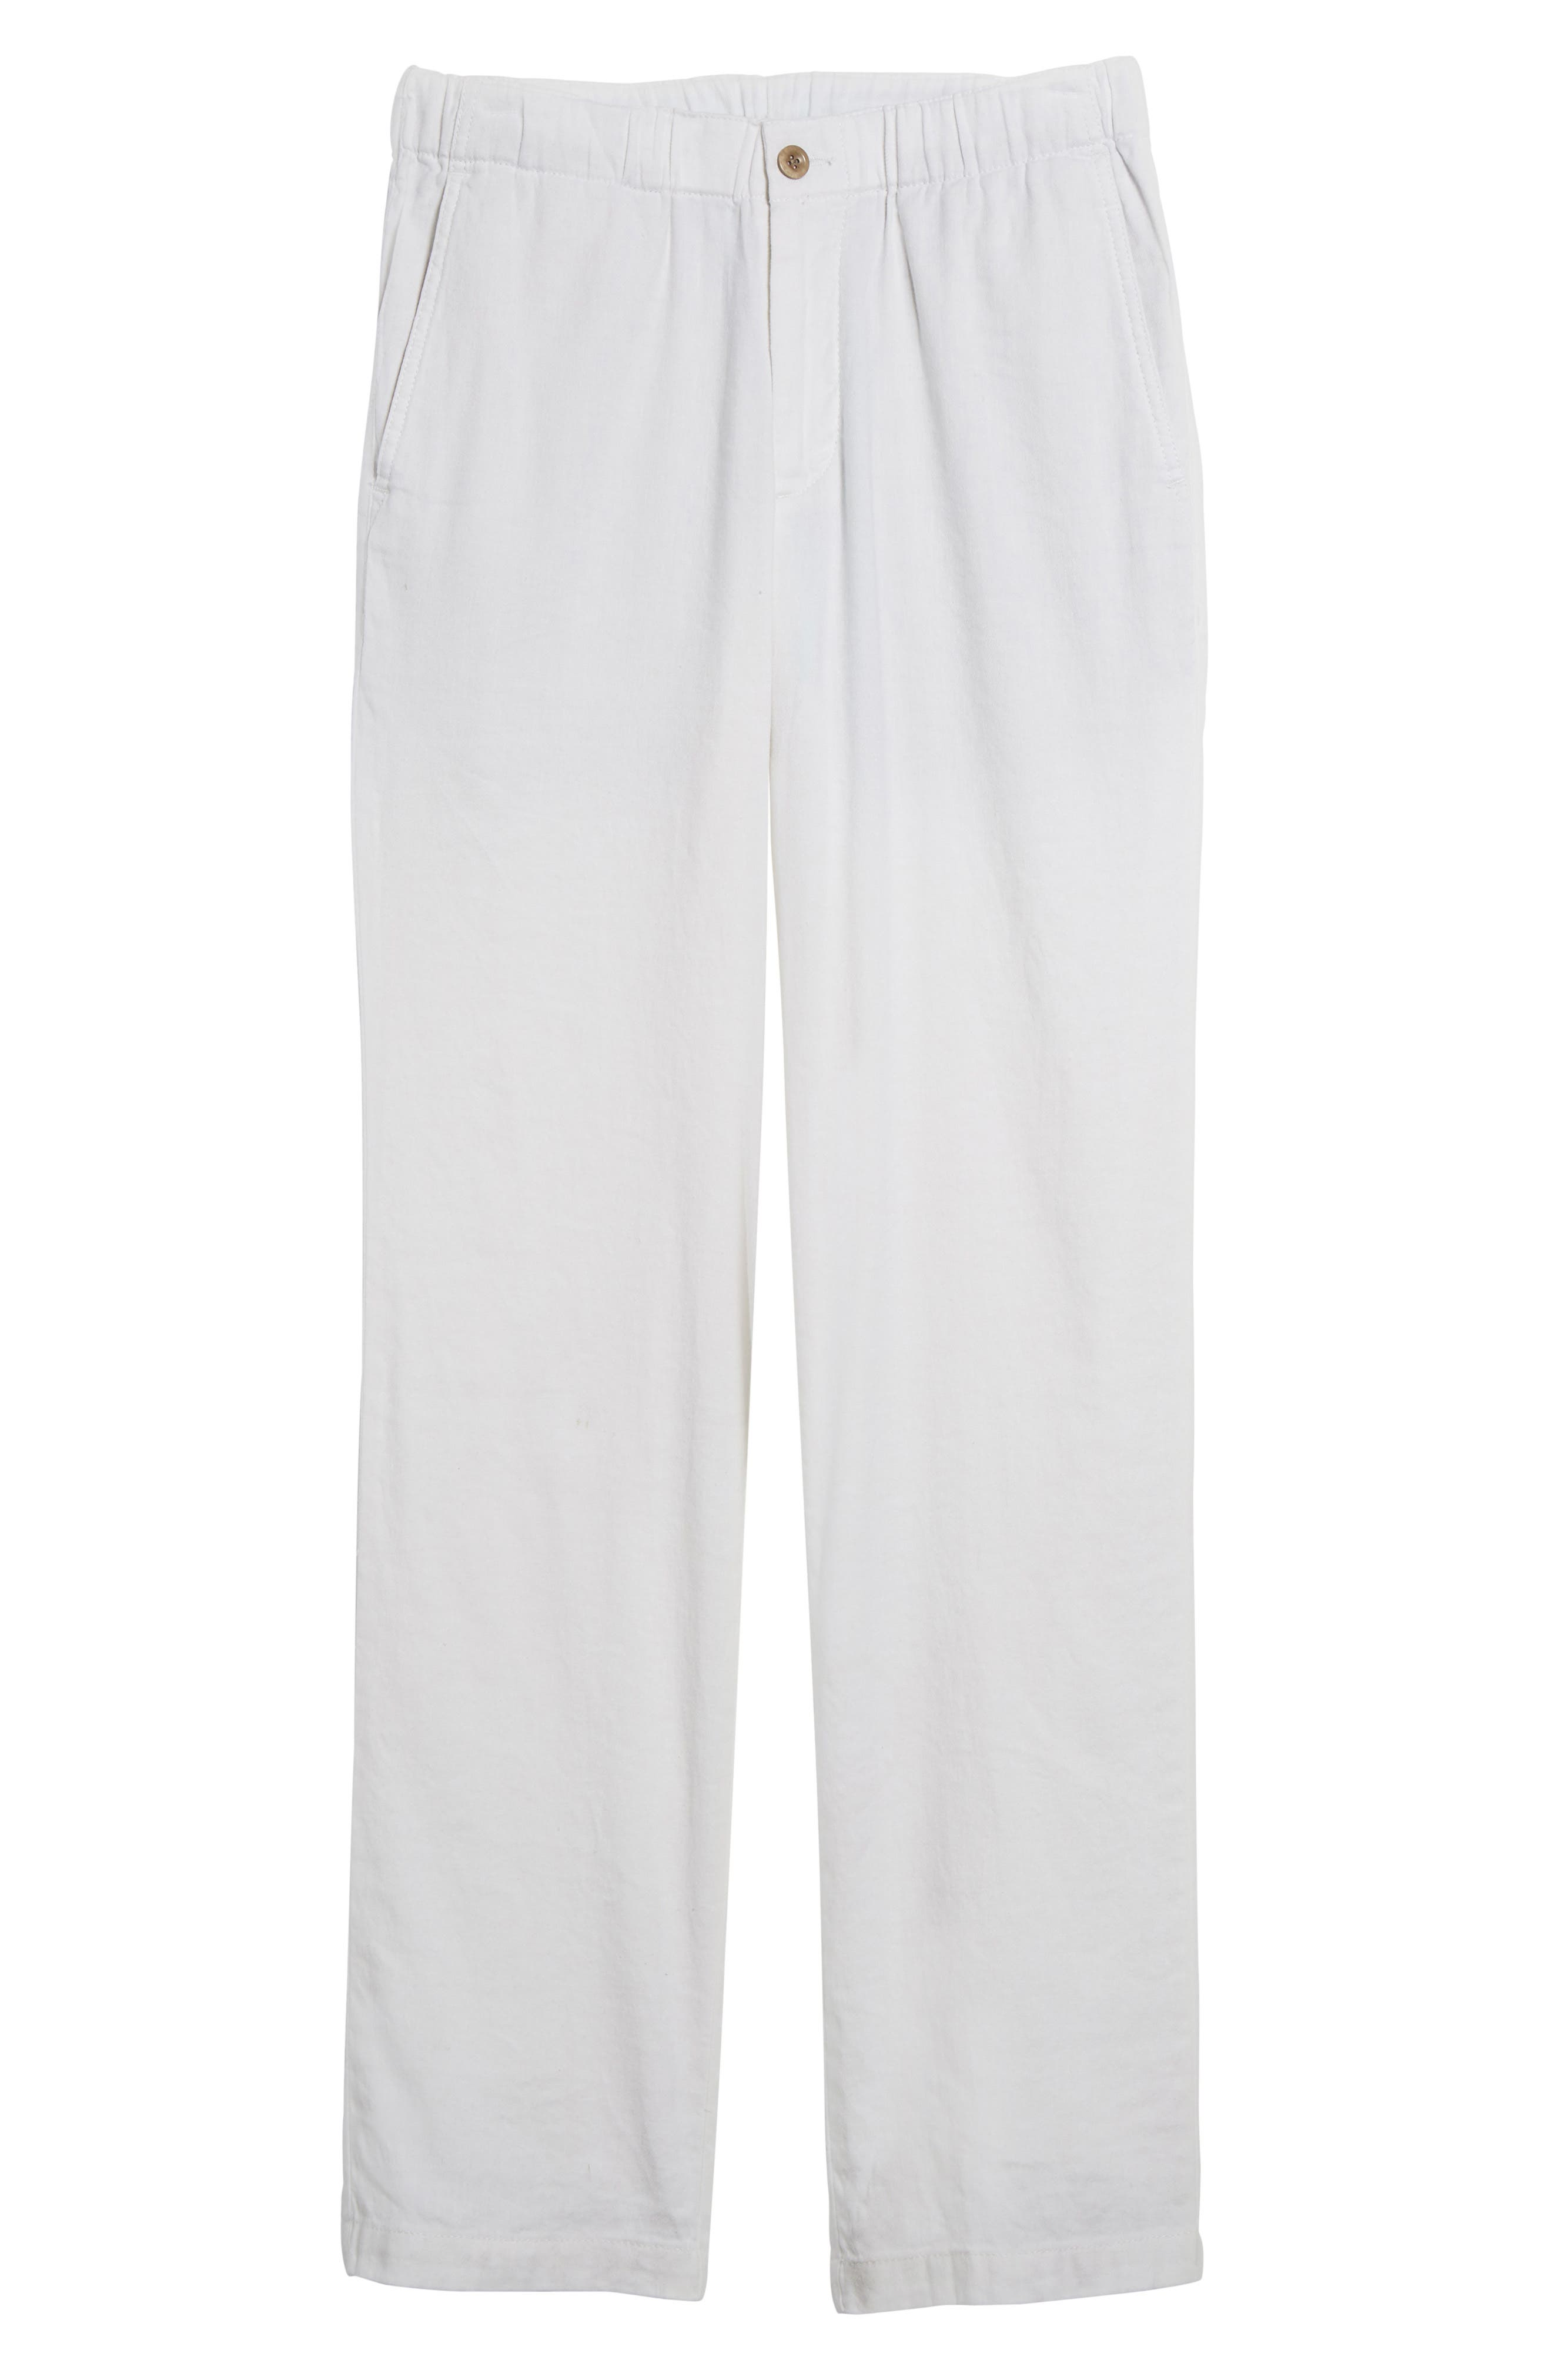 Relaxed Linen Pants,                             Alternate thumbnail 6, color,                             CONTINENTAL